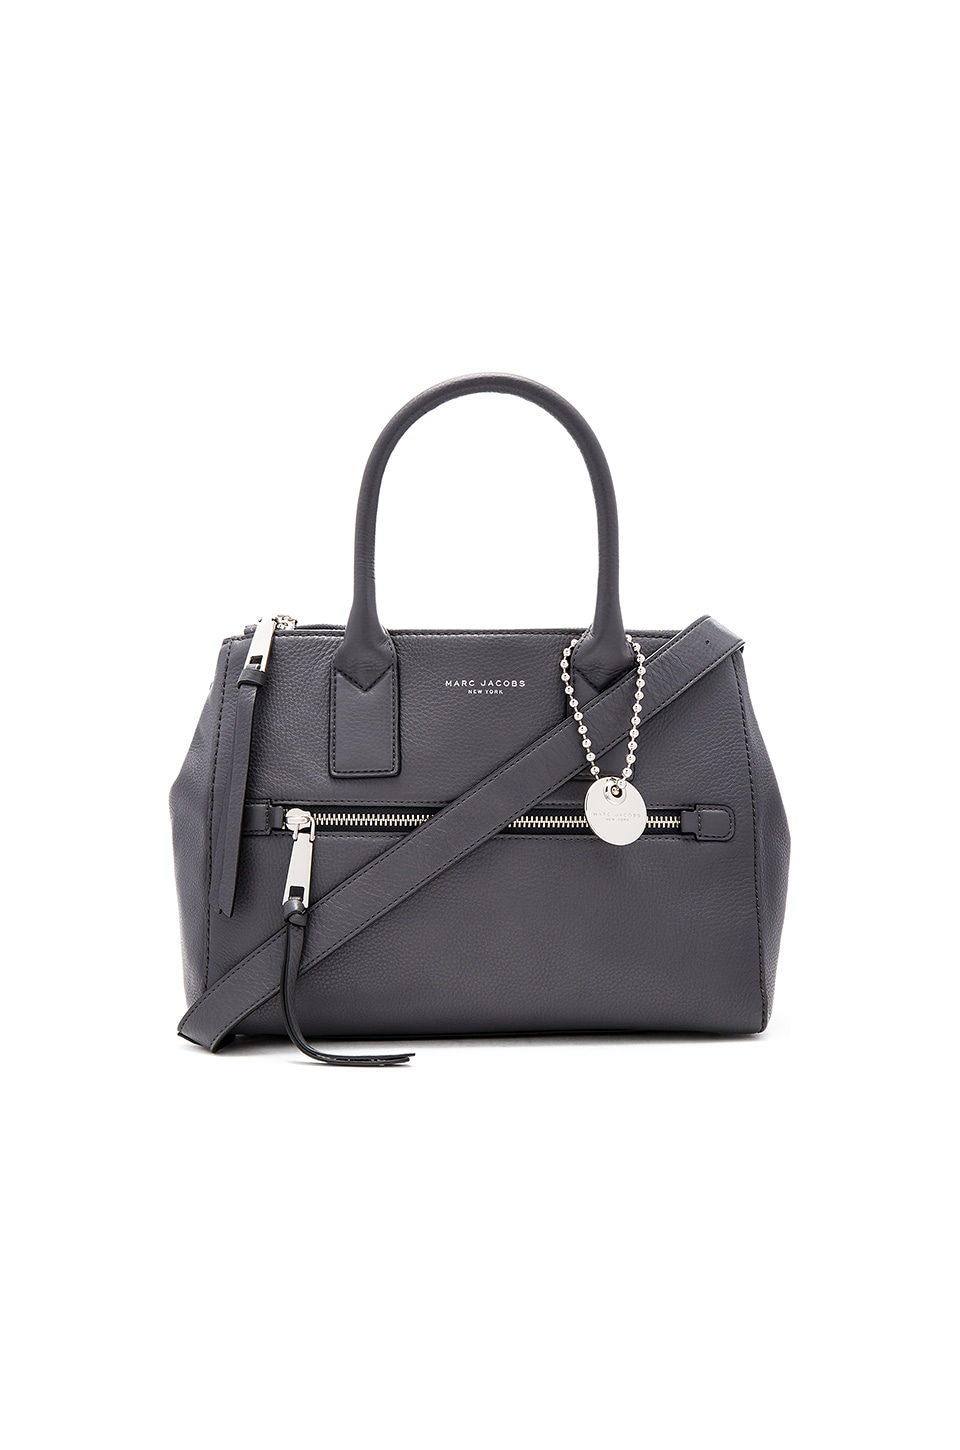 Marc Jacobs Recruit E/W Tote in Shadow